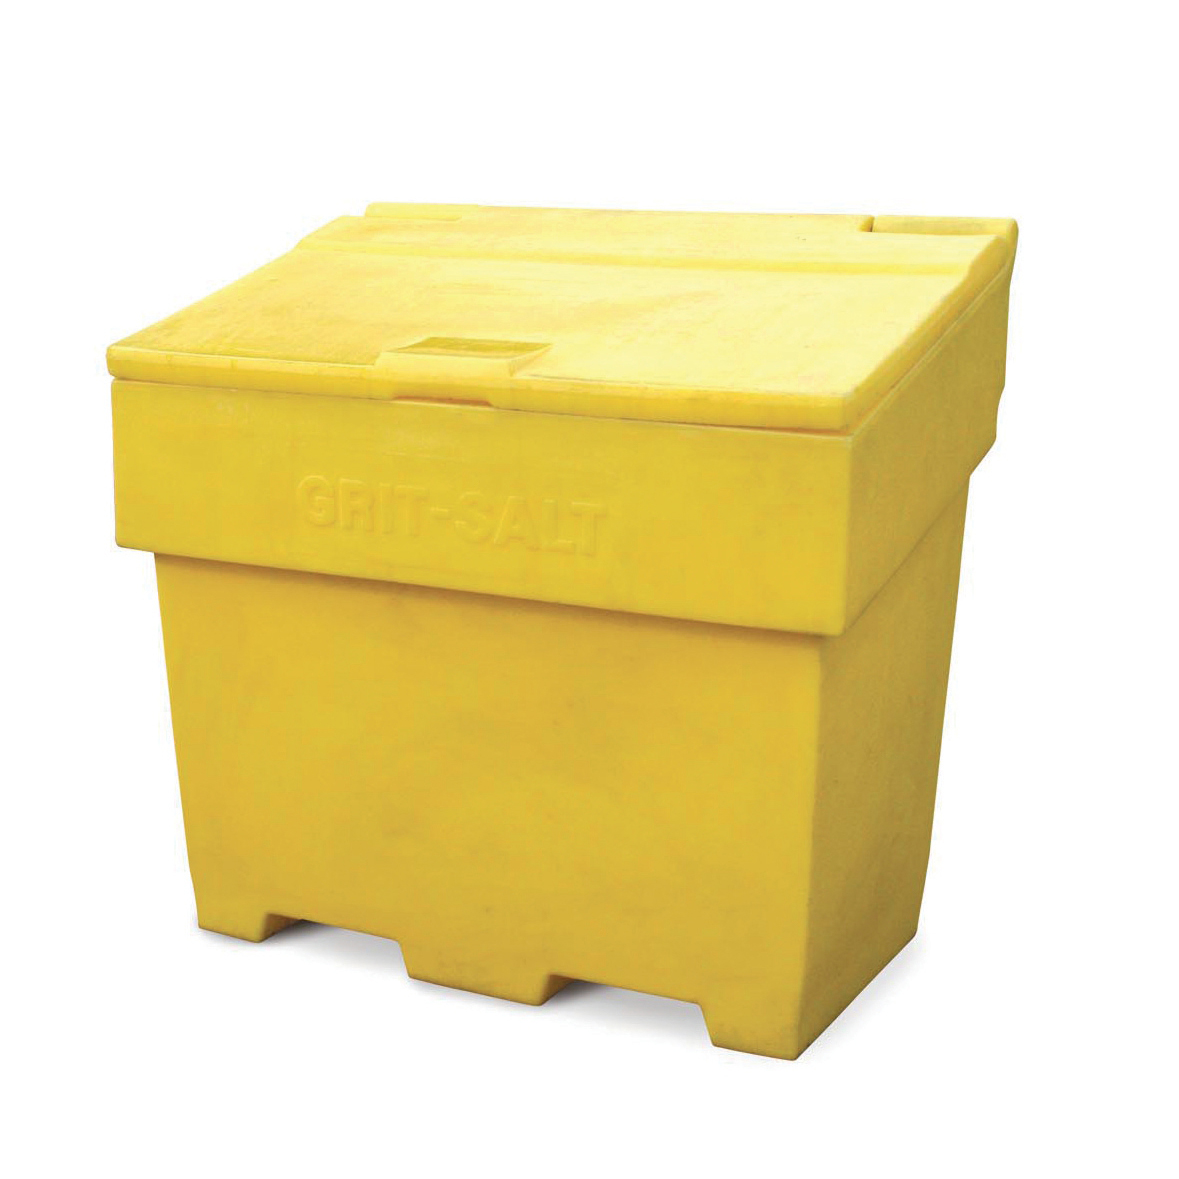 De-Icing Supplies Bentley Grit and Salt Bin Polyethylene Capacity 400kg Weight 22kg Ref SPC/GRIT400